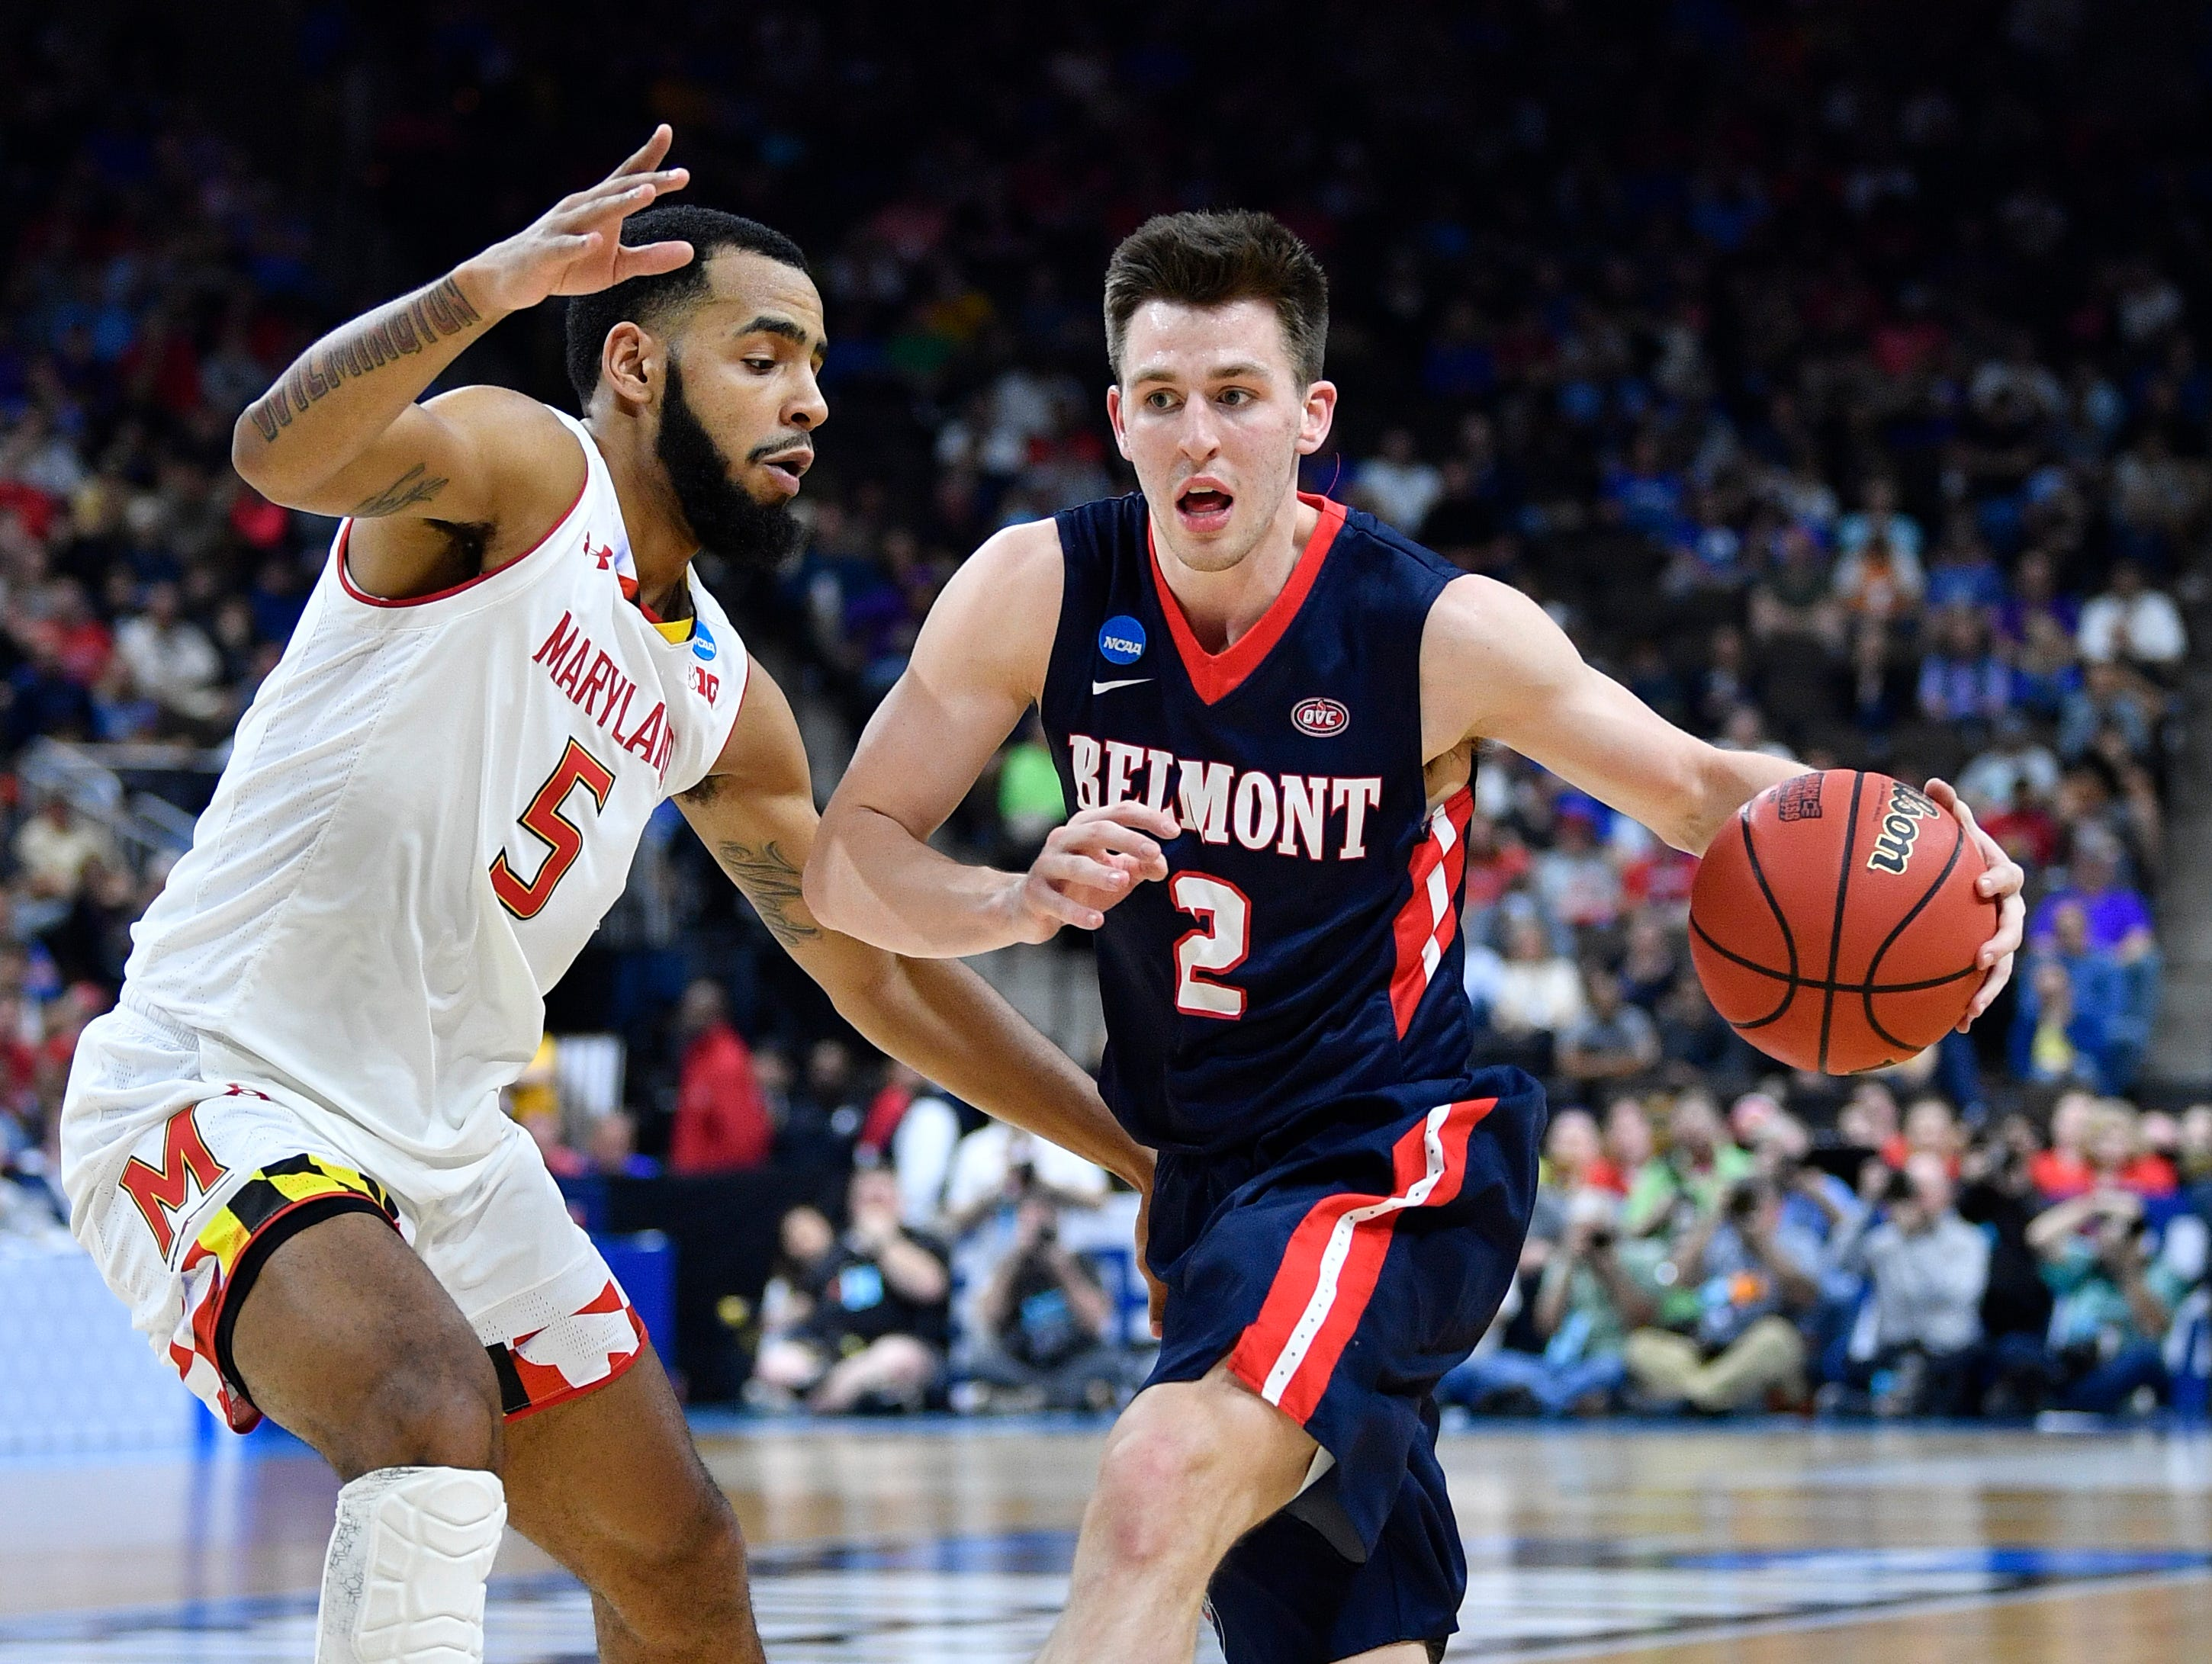 Belmont guard Grayson Murphy (2) drives past Maryland guard Eric Ayala (5) during the first half of the first-round NCAA college basketball tournament game at VyStar Veterans Memorial Arena in Jacksonville, Fla., Thursday, March 21, 2019.